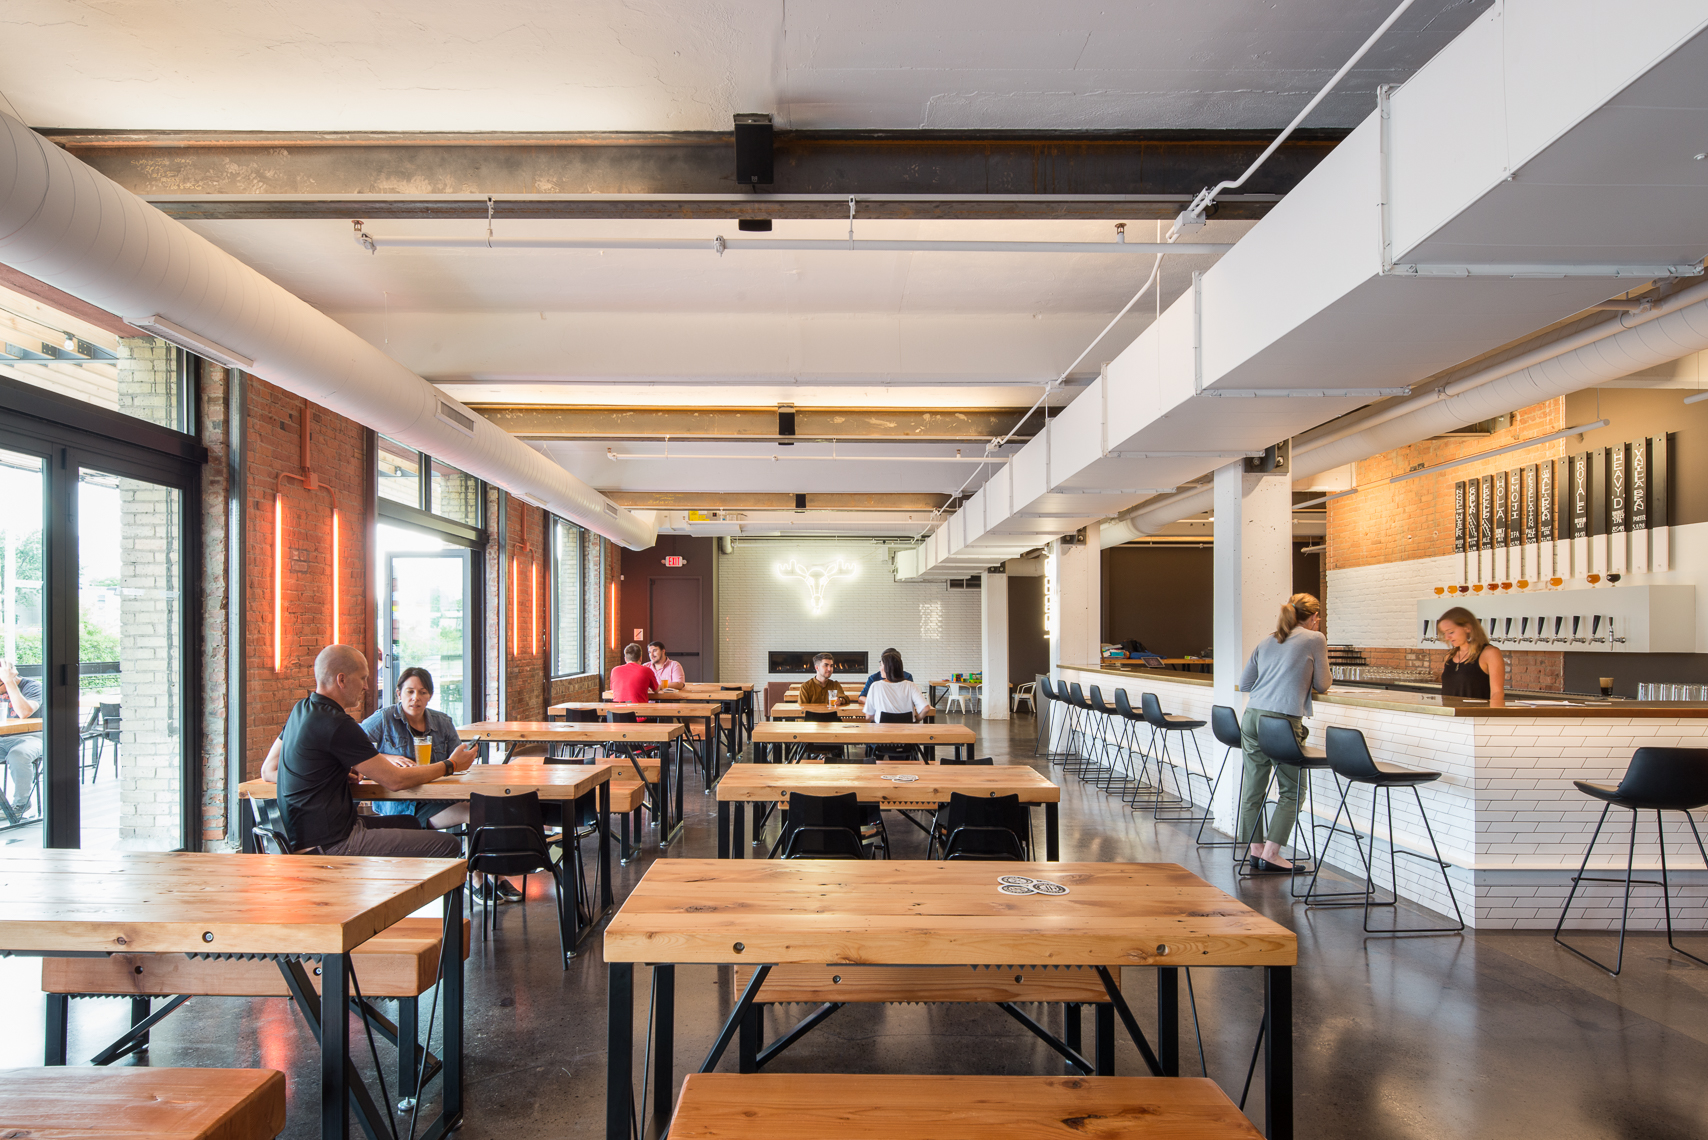 Modern brewery and taproom renovation in Minneapolis by Christian Dean Architecture.